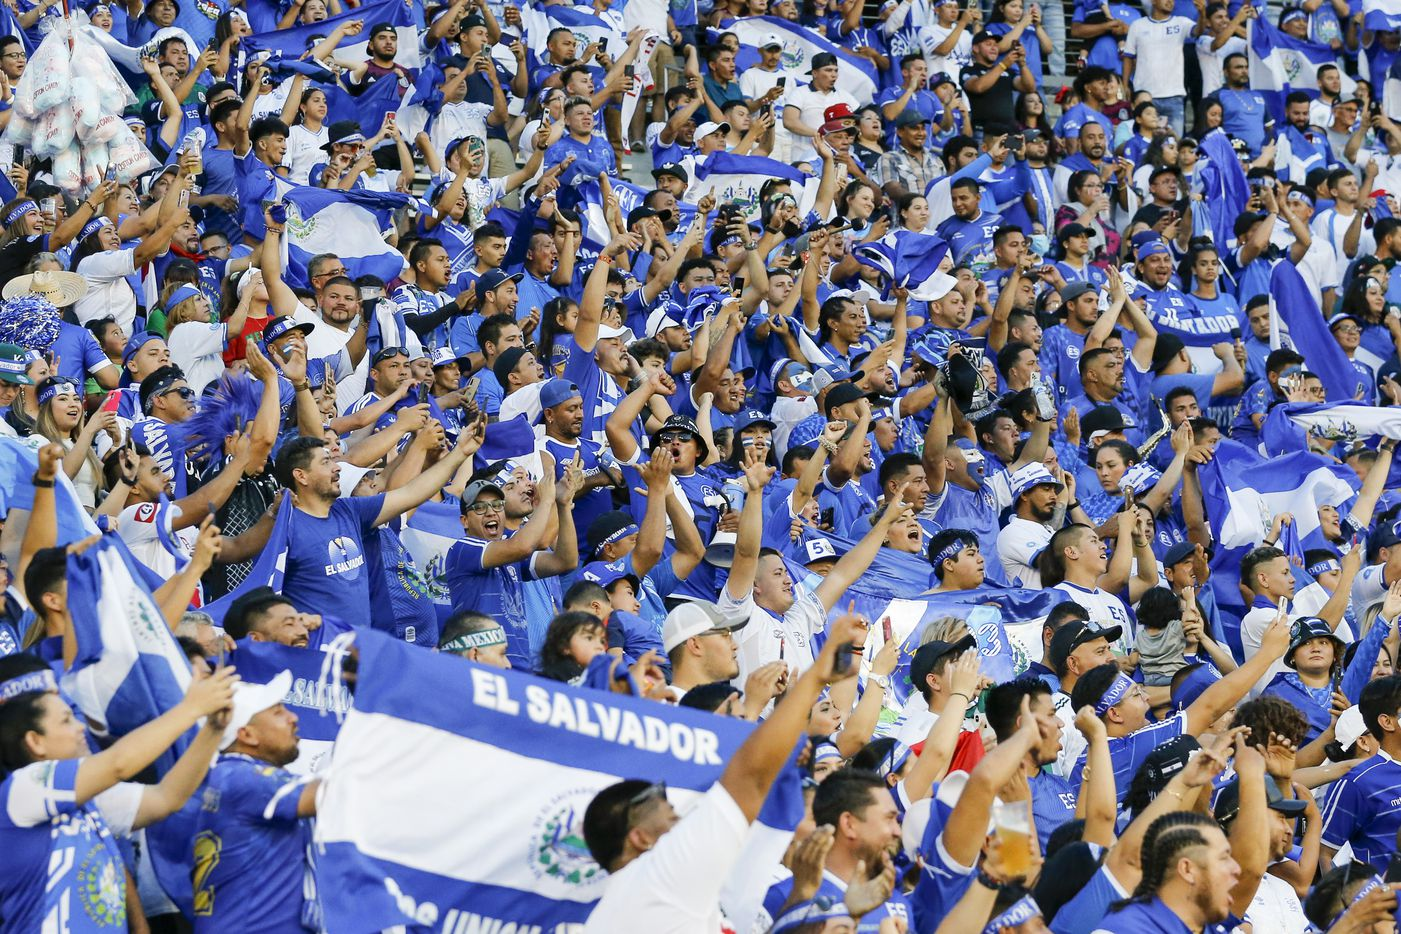 Fans of El Salvador cheer as the team walks onto the field before the first half of a CONCACAF Gold Cup Group A soccer match against Mexico at the Cotton Bowl on Sunday, July 18, 2021, in Dallas. (Elias Valverde II/The Dallas Morning News)